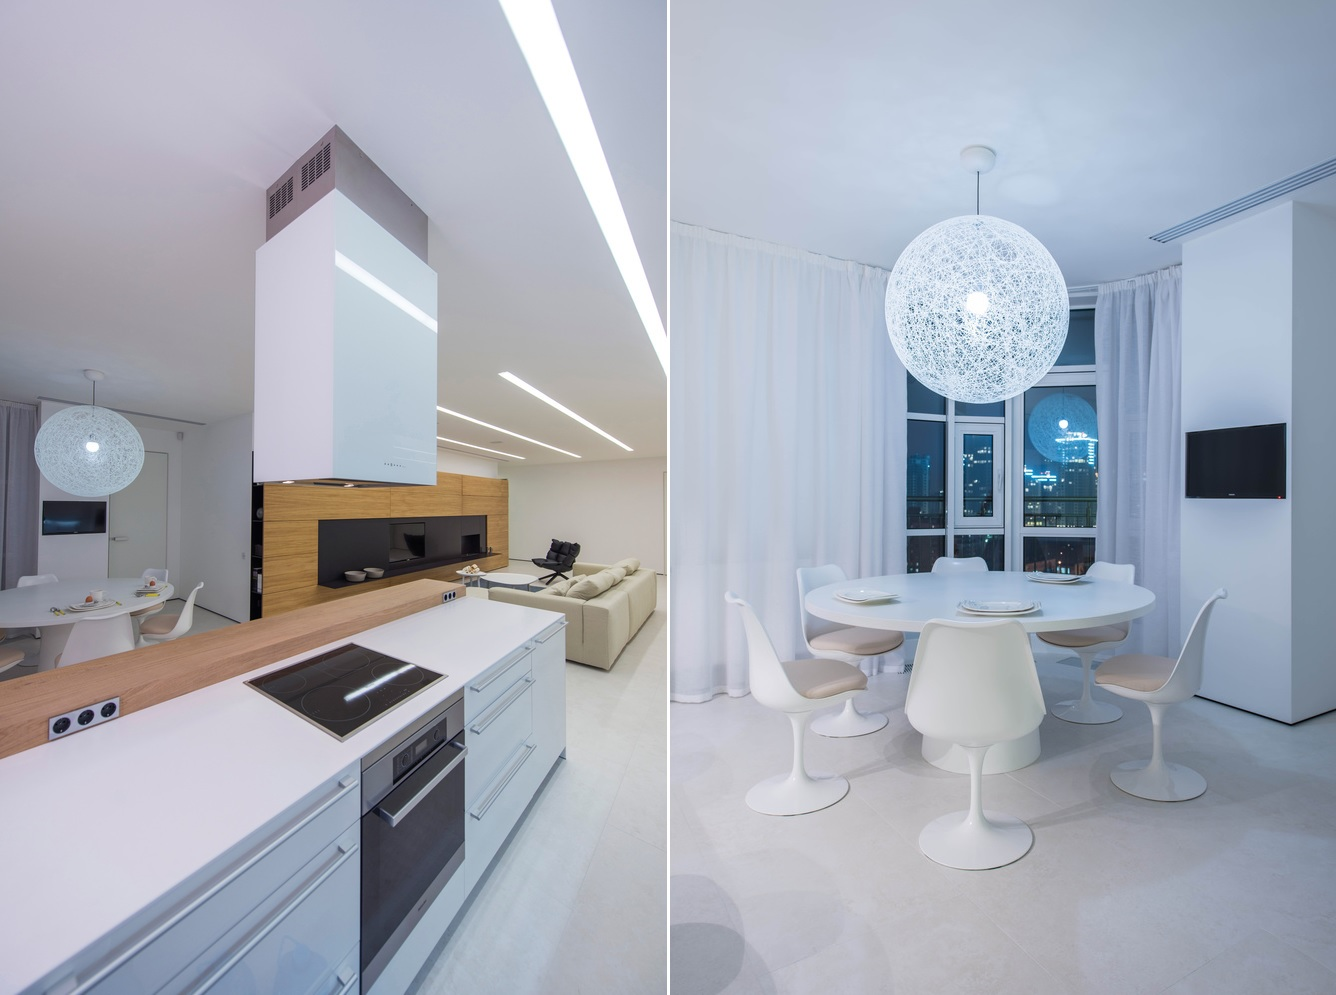 The kitchen and dining space occupy one section of the social area and their designs are very clean and simple